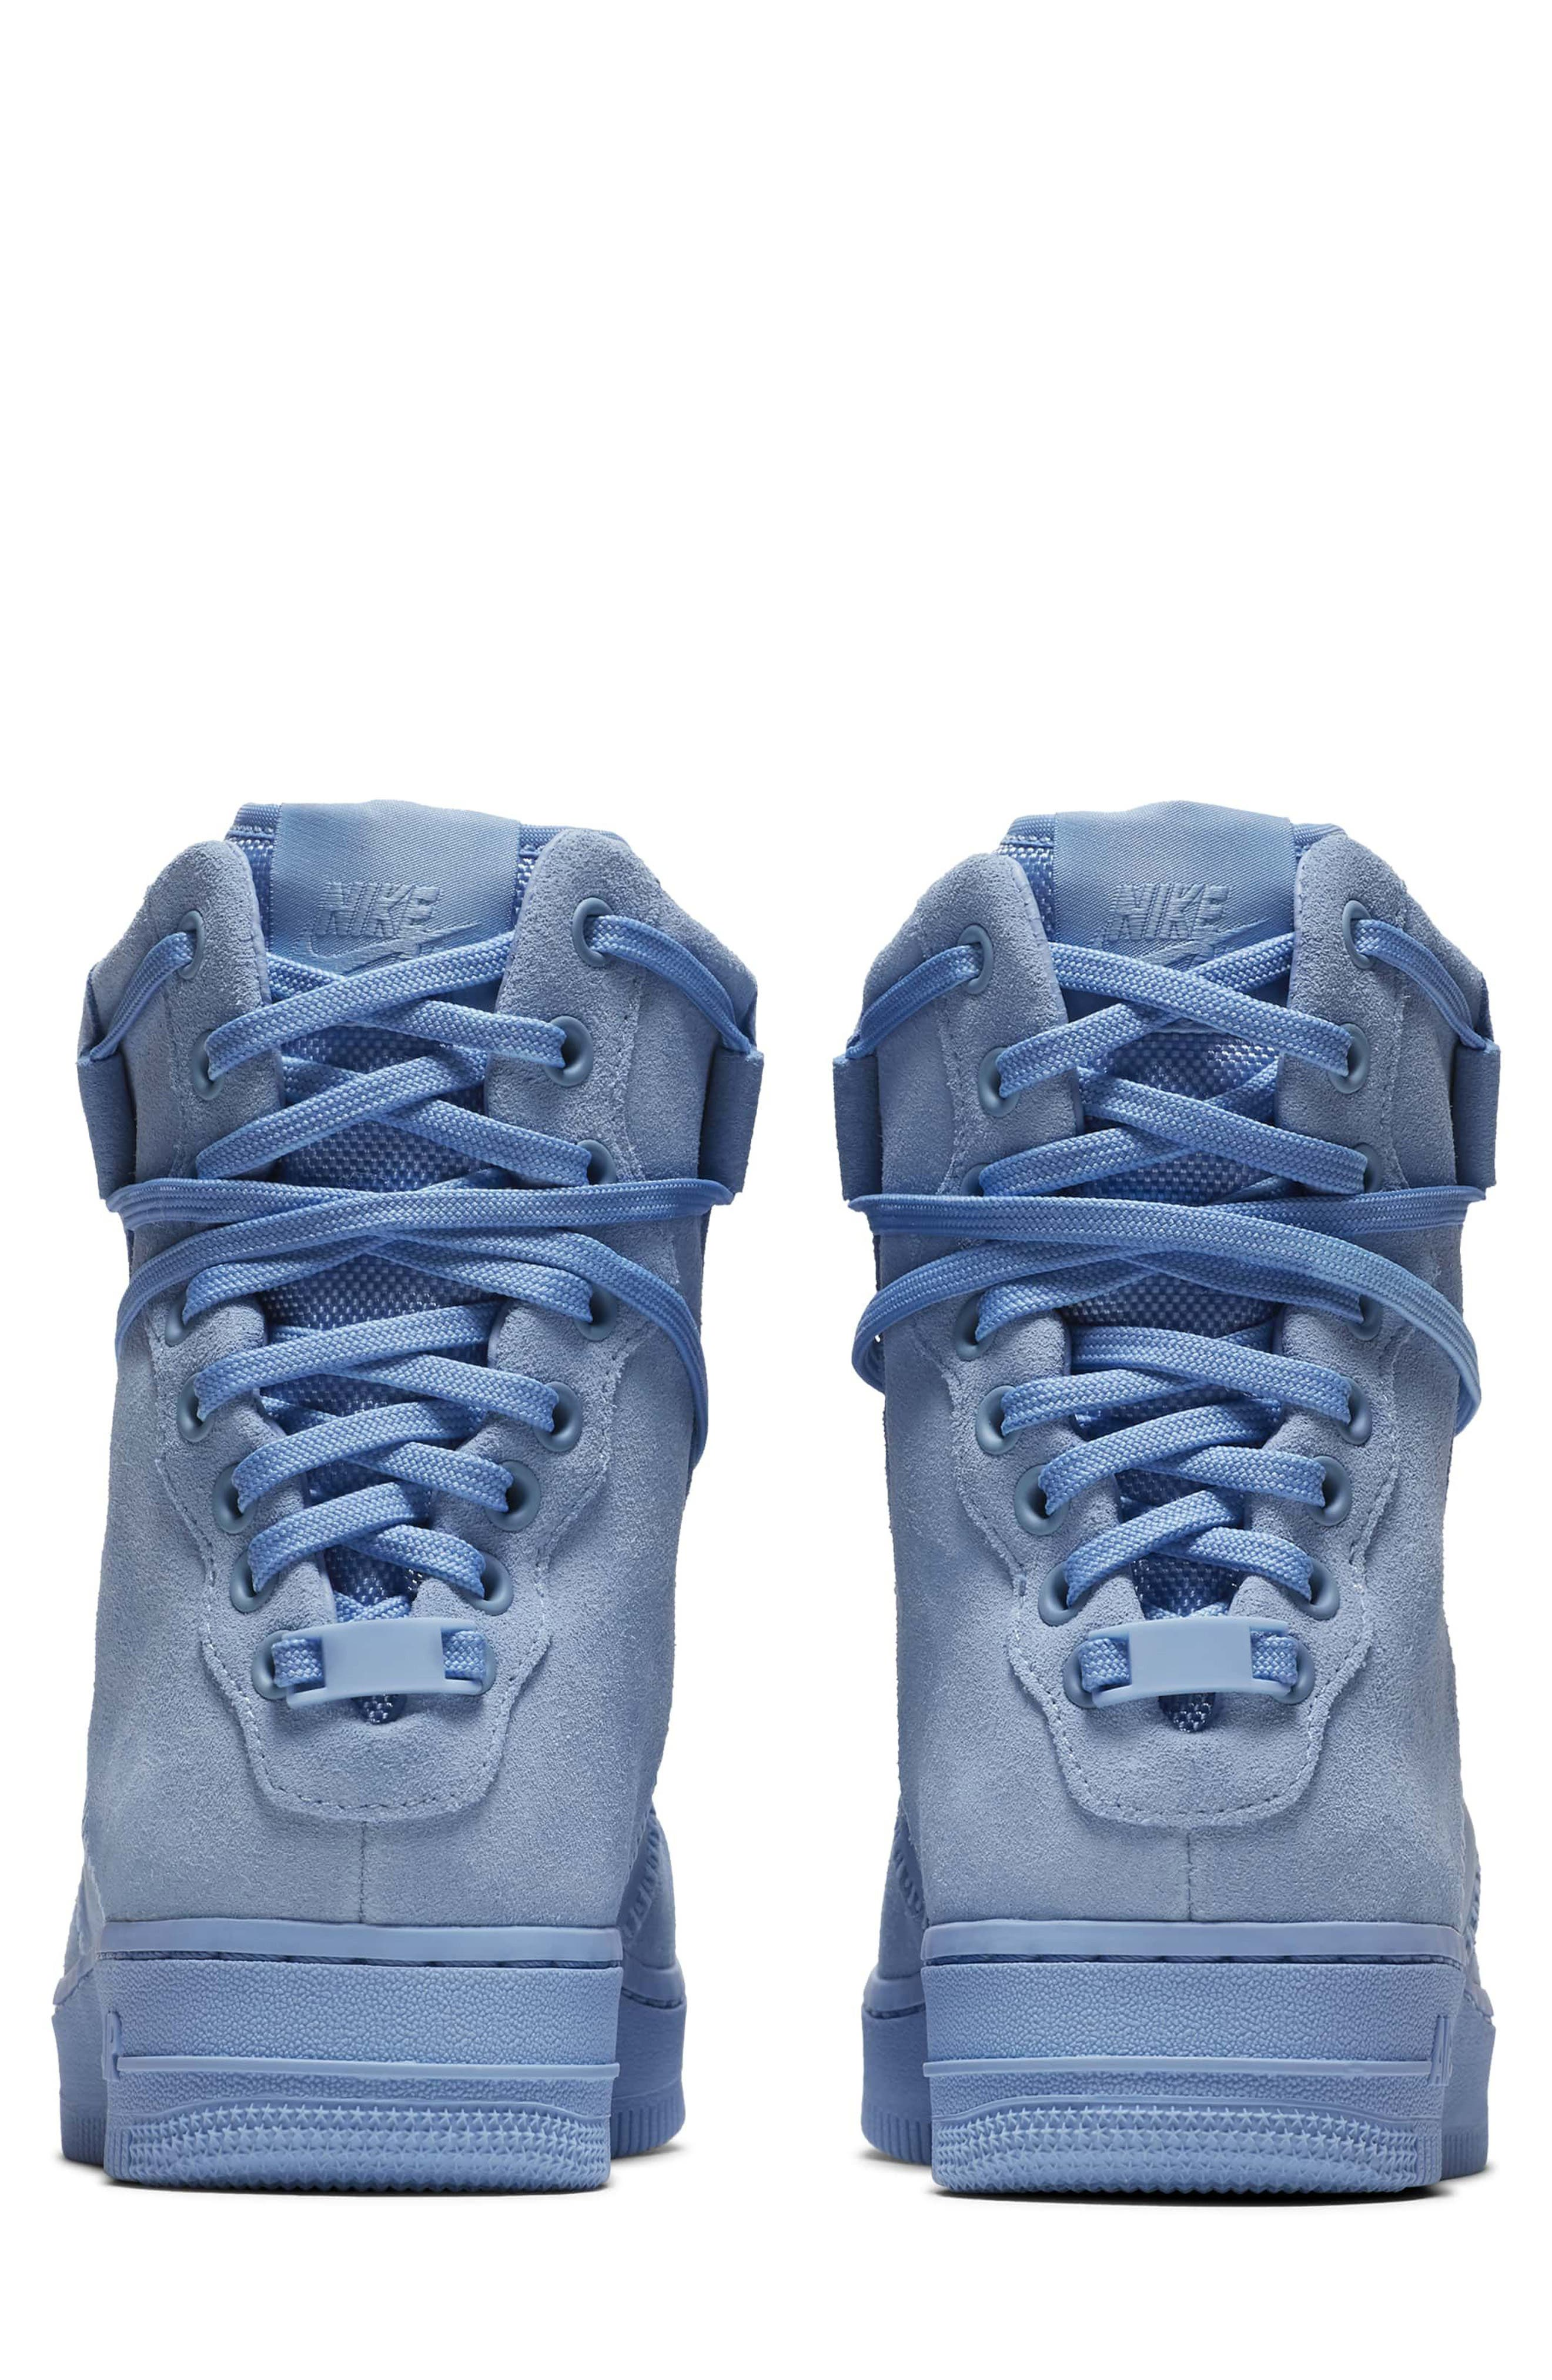 Air Force 1 Rebel XX High Top Sneaker,                             Alternate thumbnail 2, color,                             LIGHT BLUE